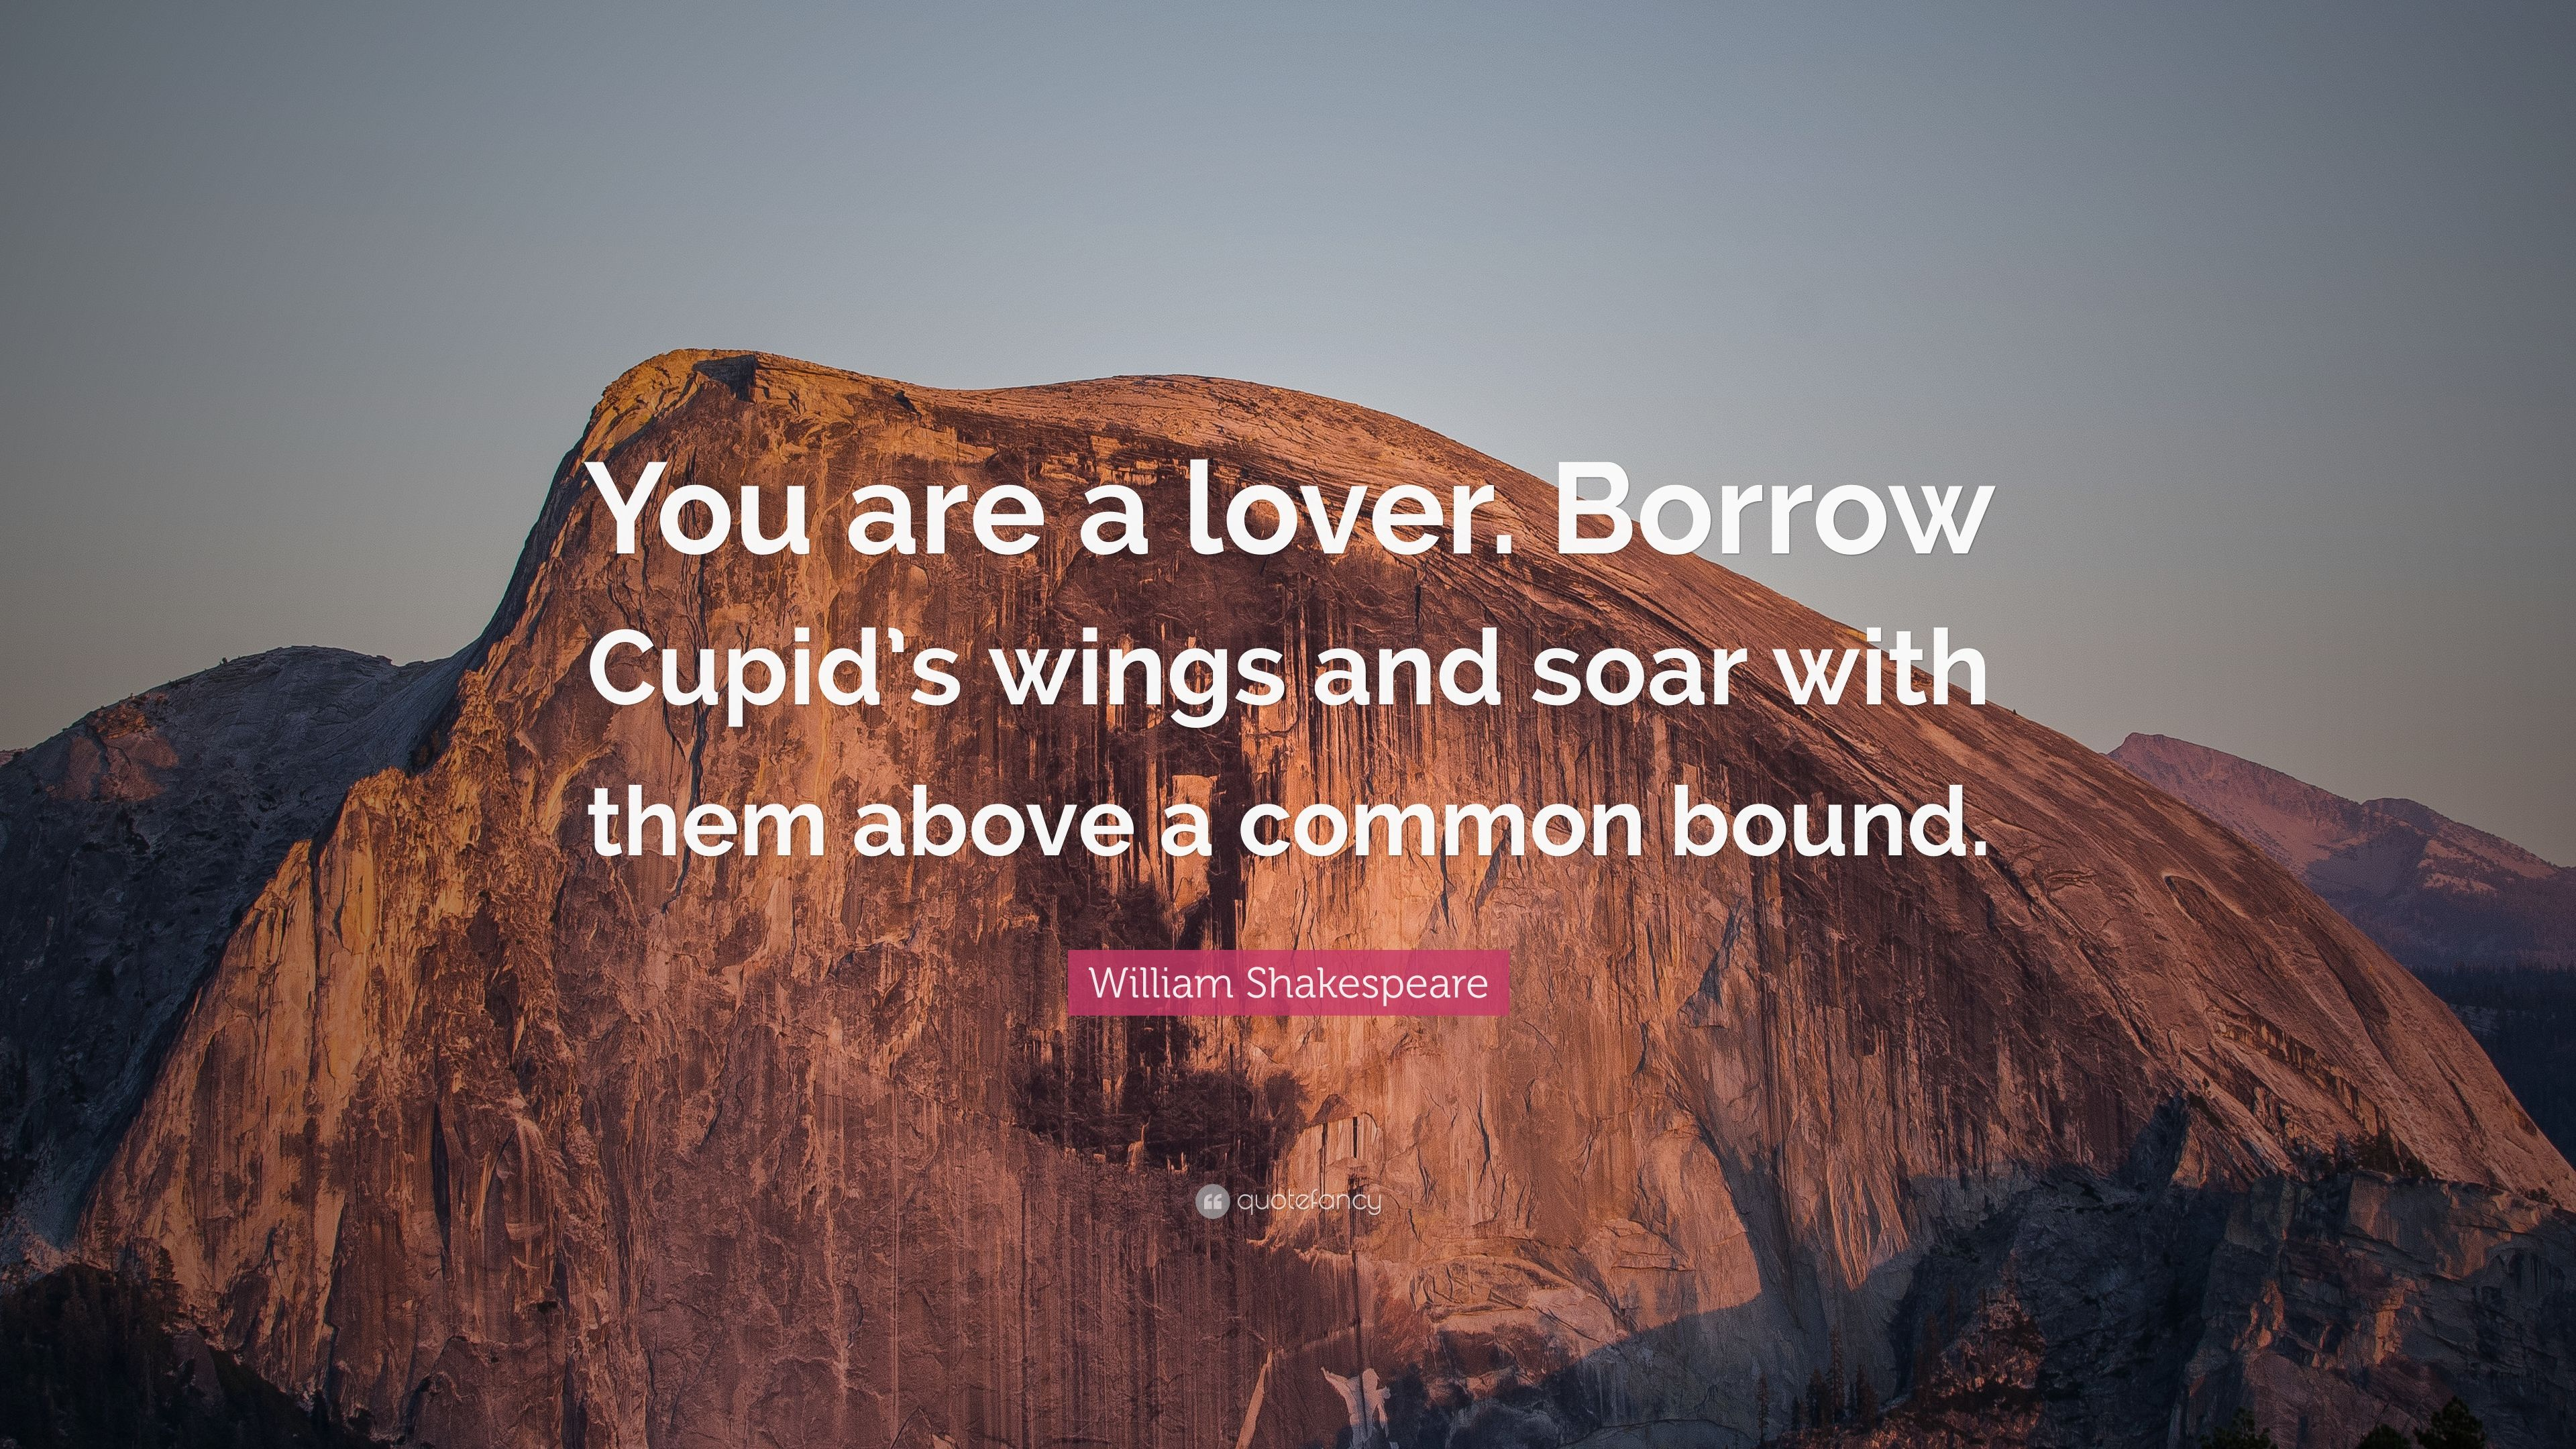 William Shakespeare Quote: You are a lover. Borrow Cupid